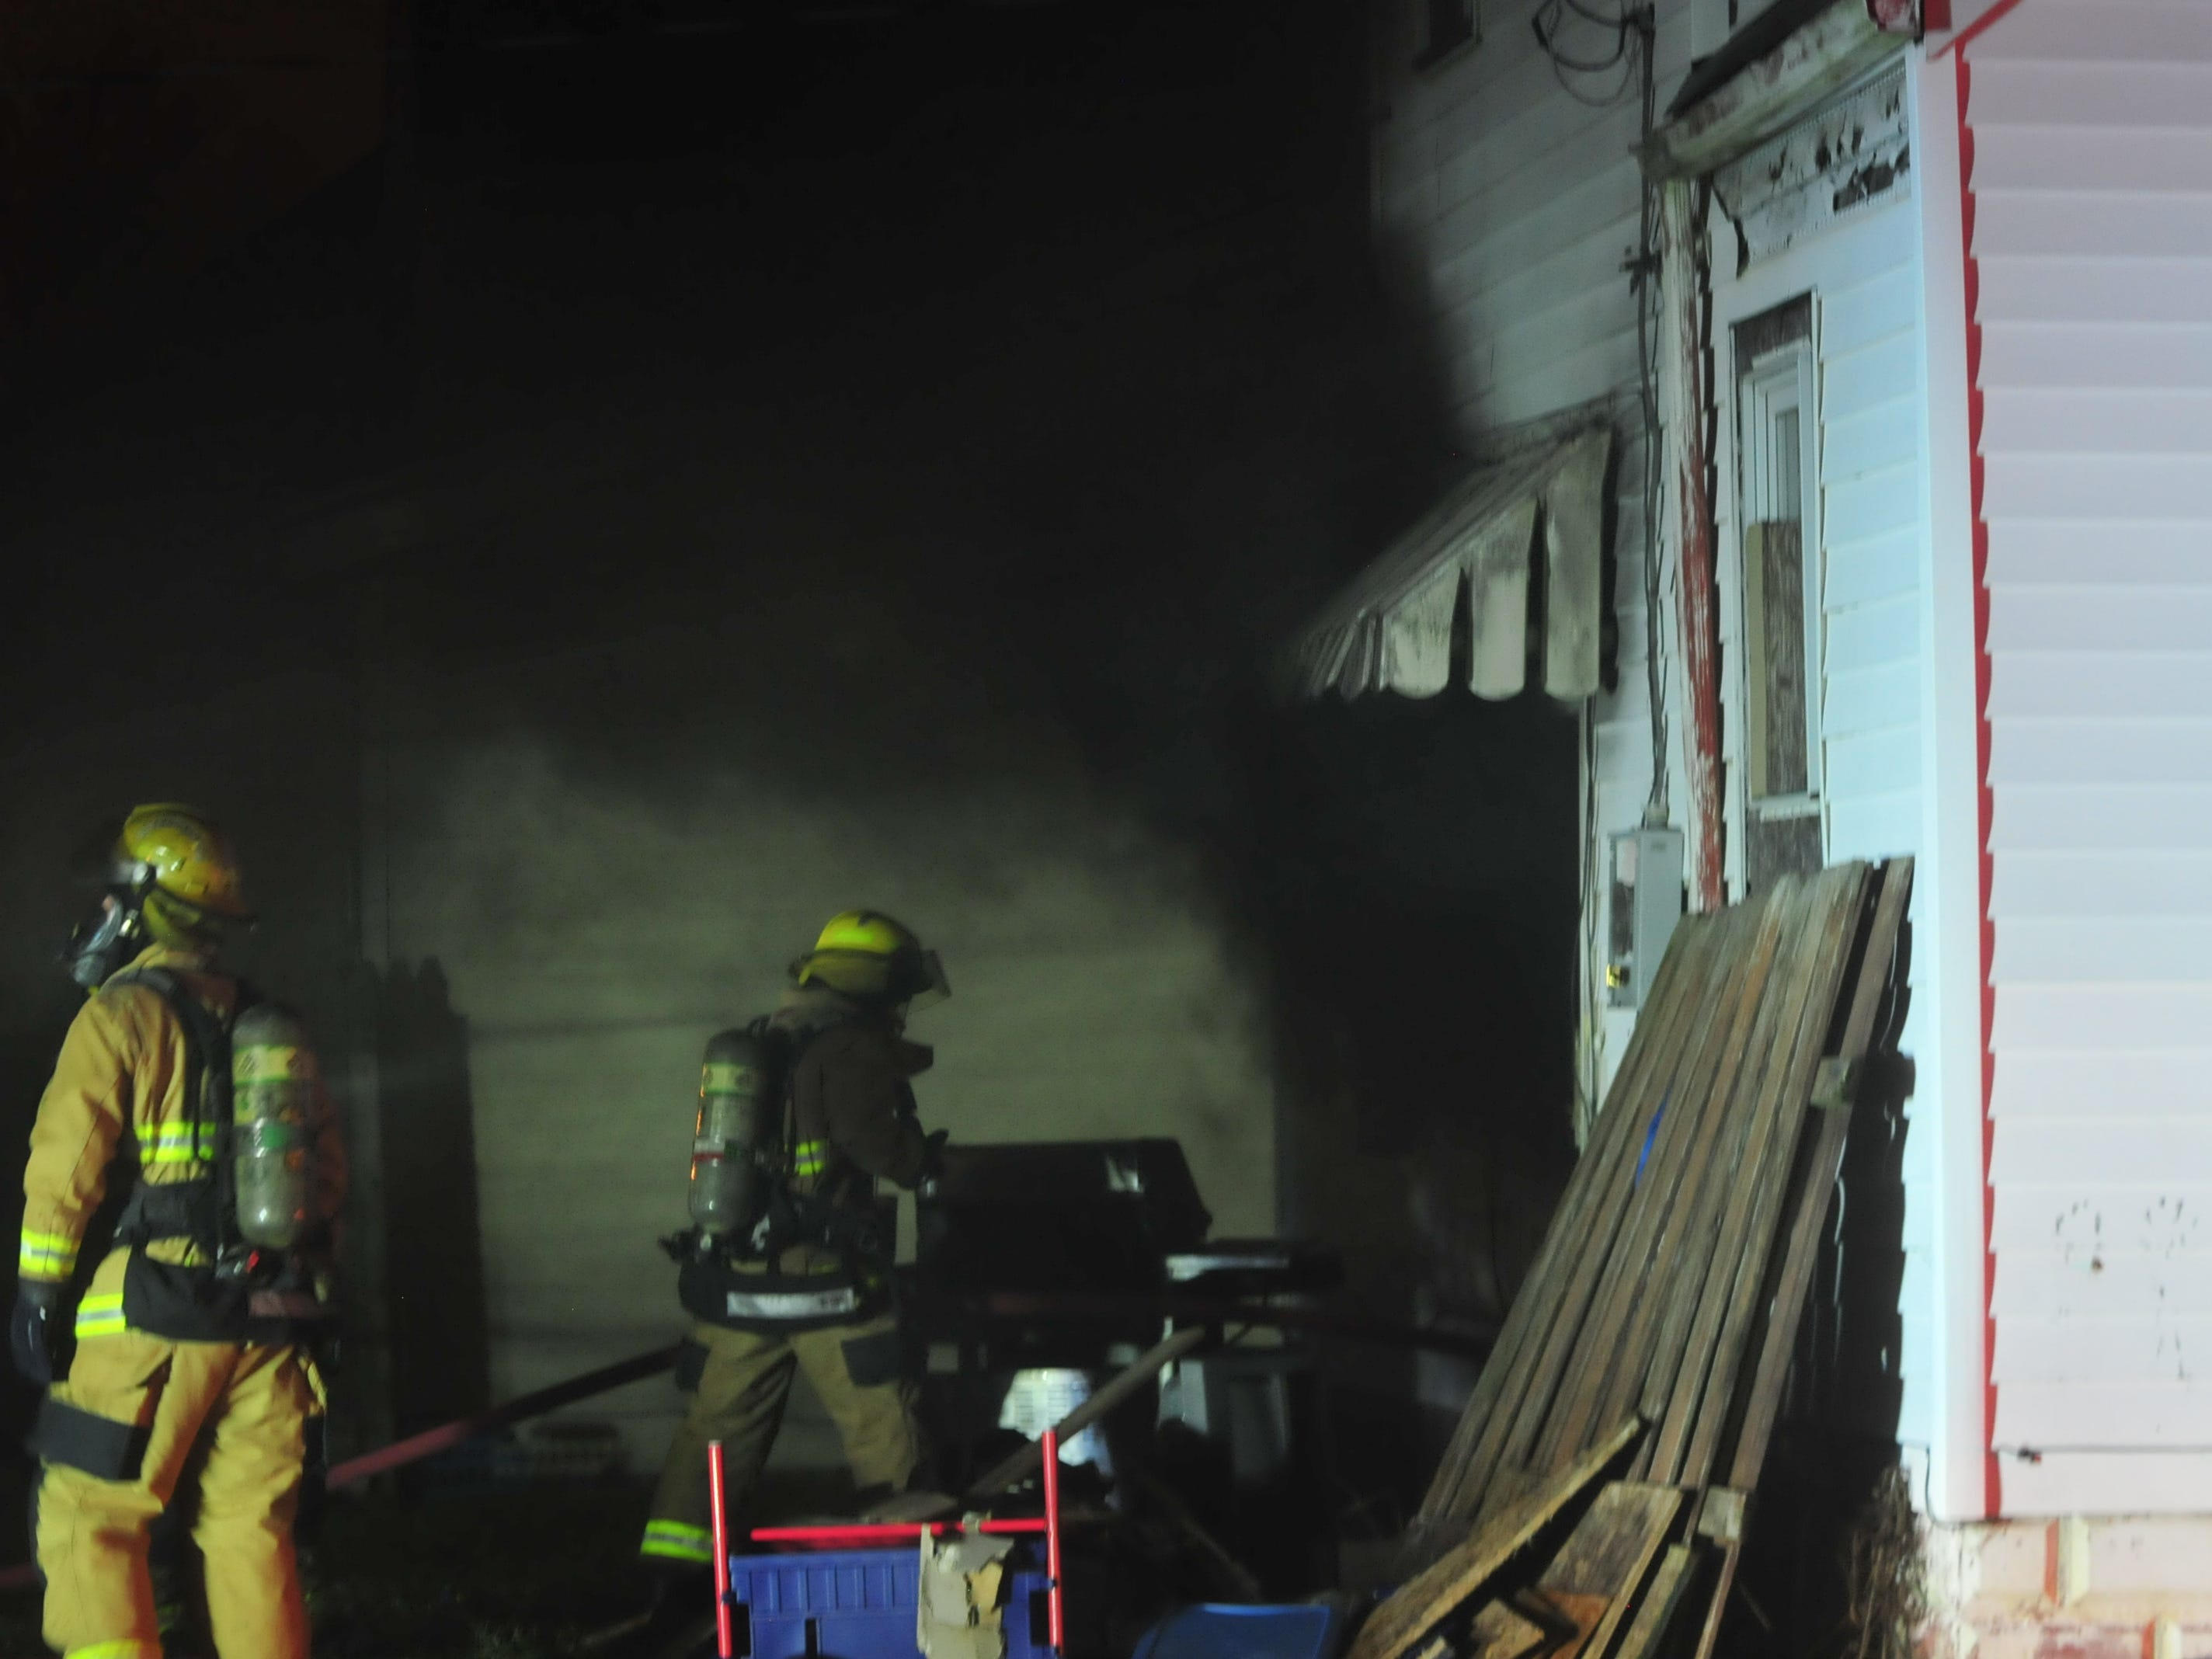 A trash fire in the basement of a vacant house on South 11th Street sent heavy, black smoke into the night Friday.